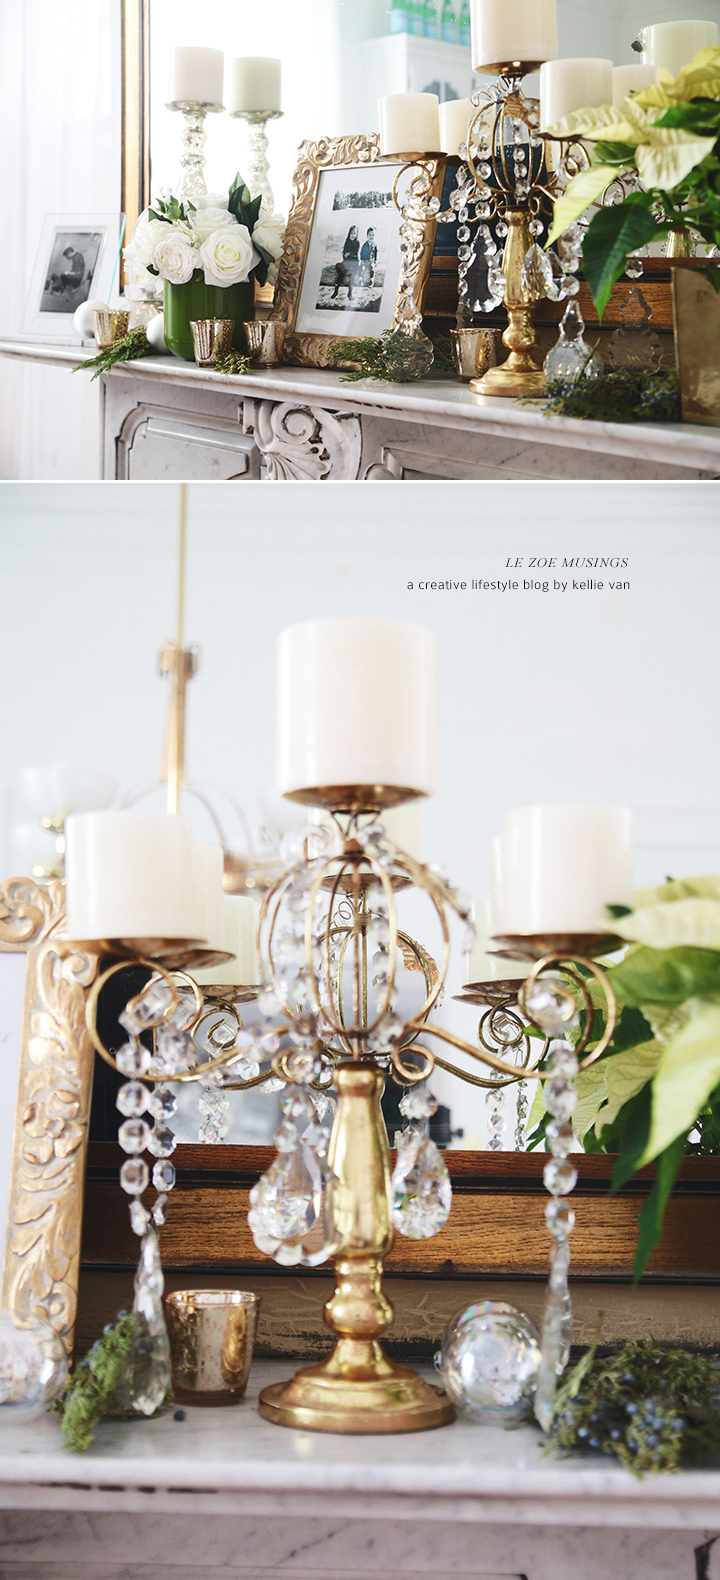 My Dining Room Holiday Mantel by Le Zoe Musings6